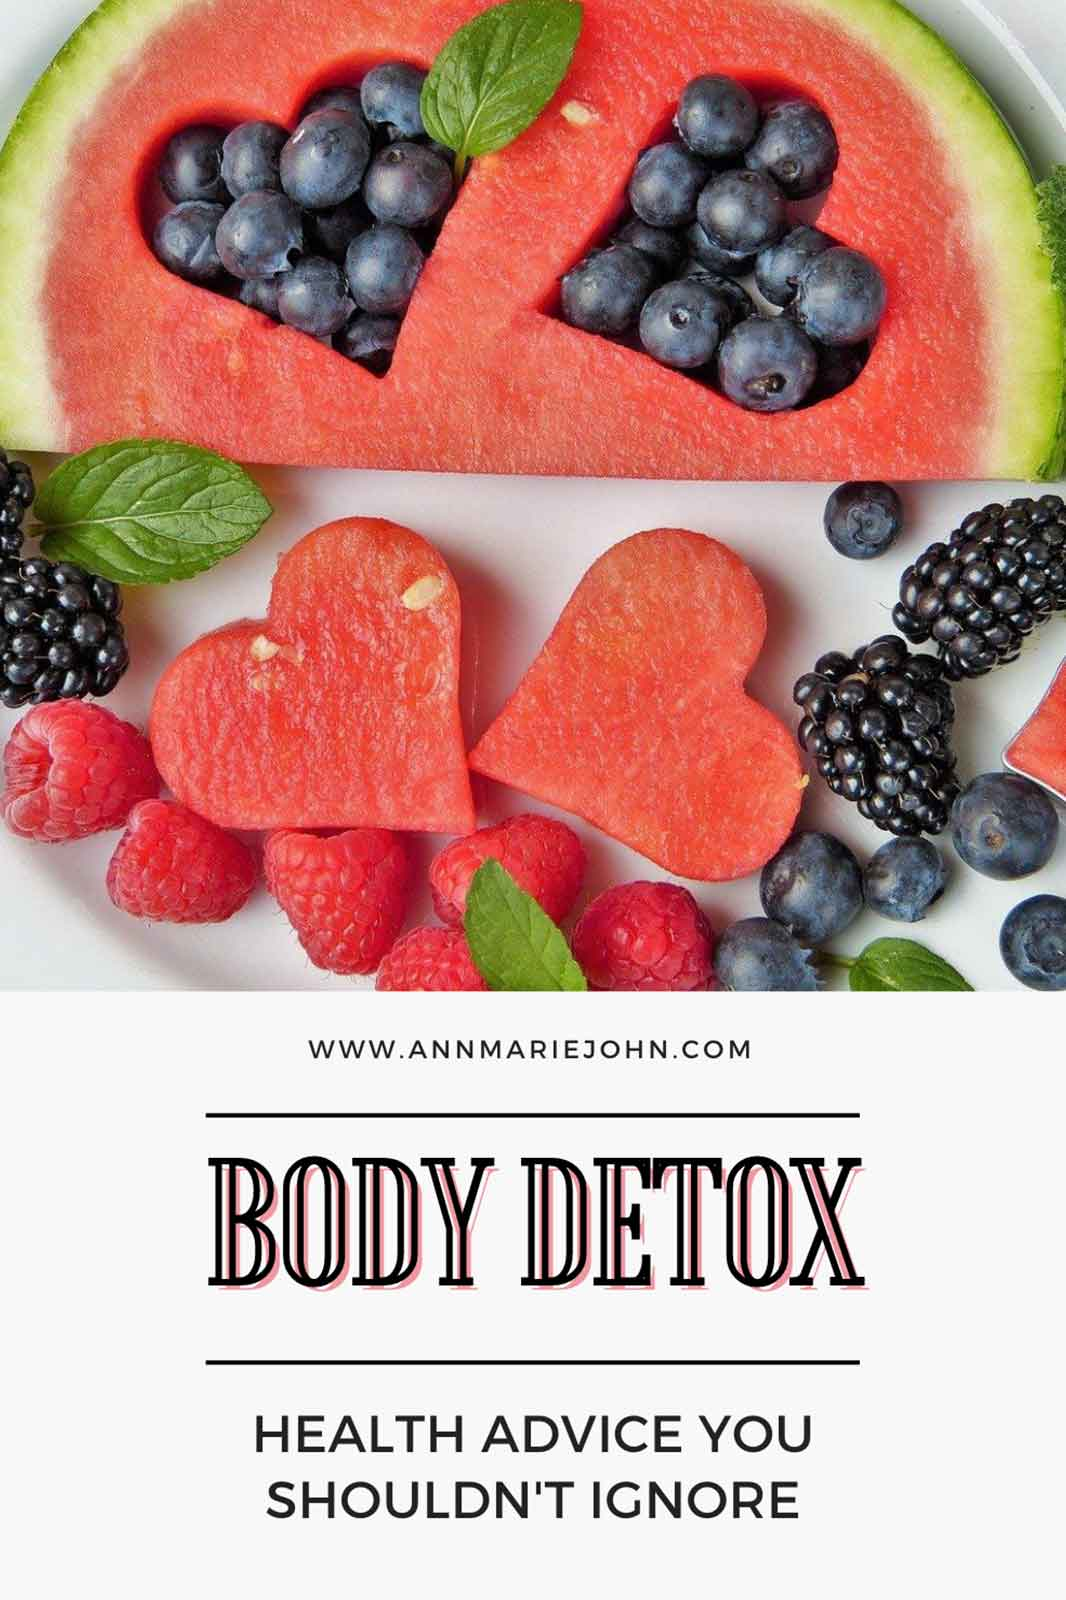 Body Detox: Health Advice You Shouldn't Ignore